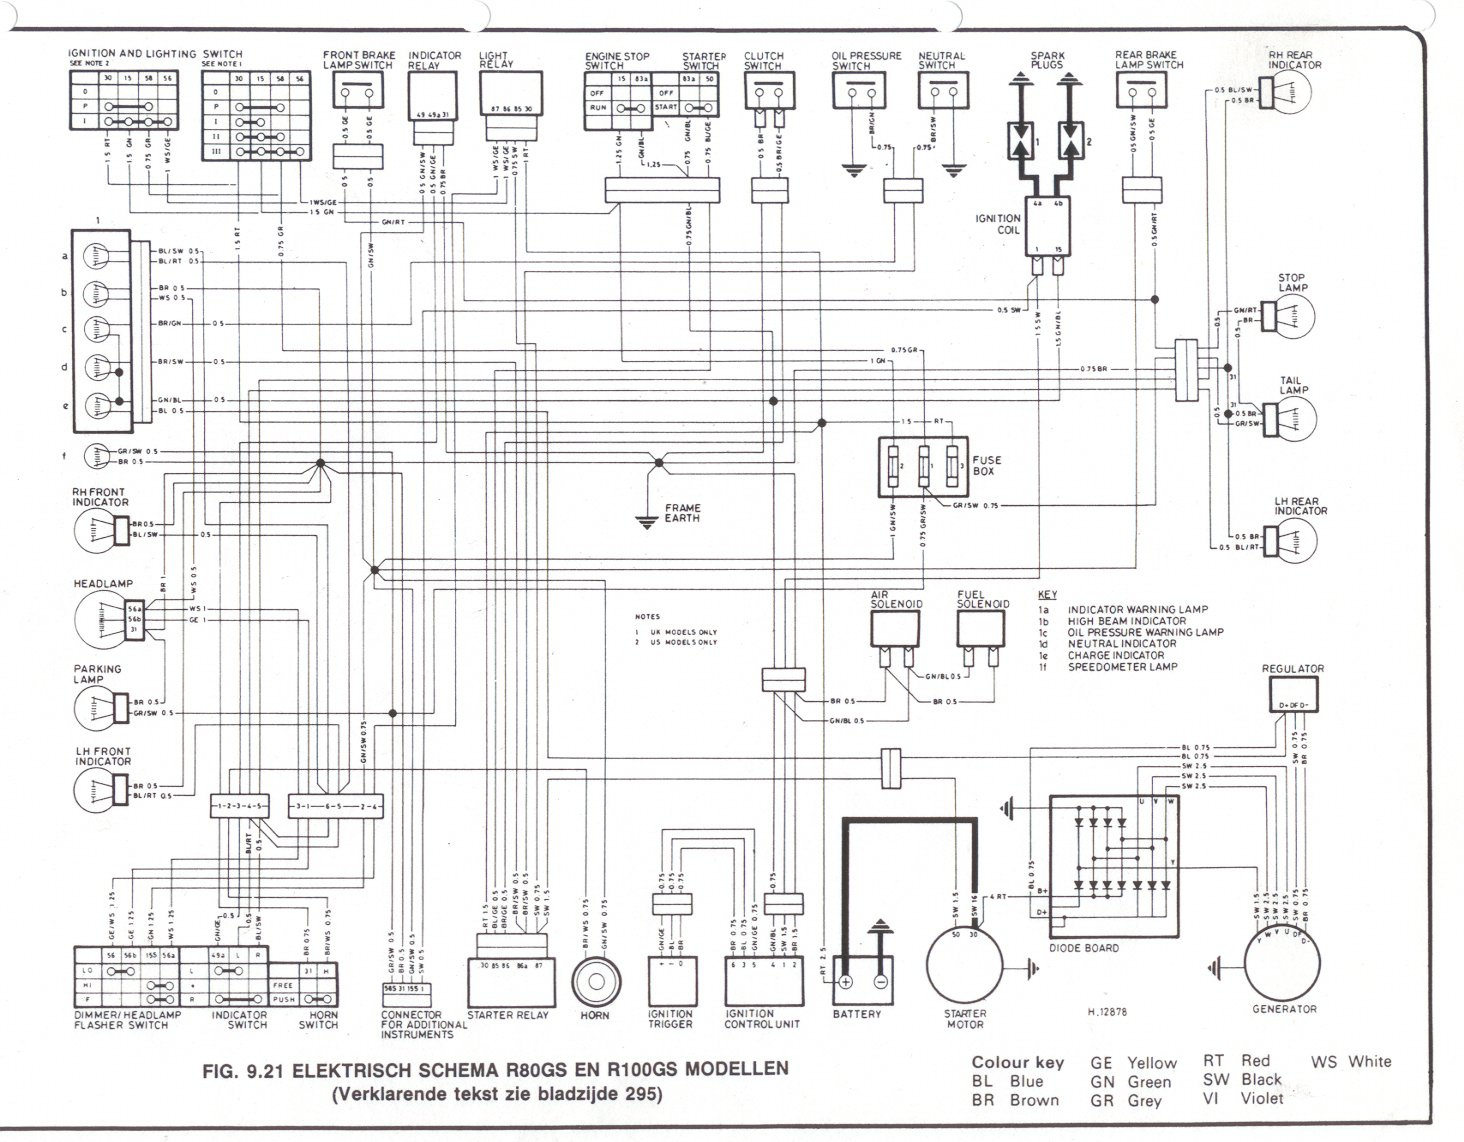 R80 100GS Schematic bmw r100 info thiel org za bmw r100rs gauge wiring diagram at honlapkeszites.co